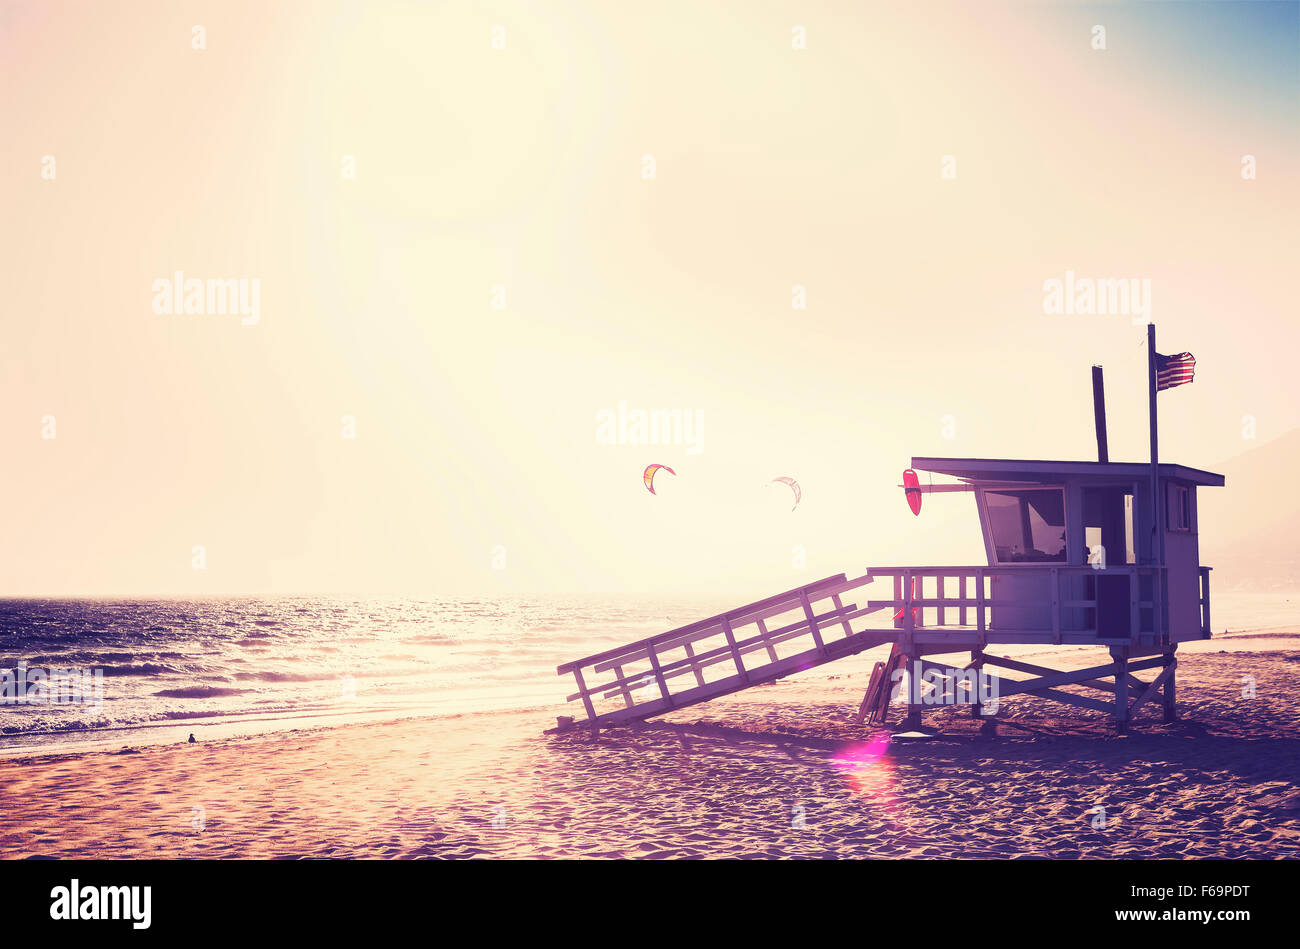 Vintage filtered lifeguard tower at sunset with lens flare effect, USA. - Stock Image